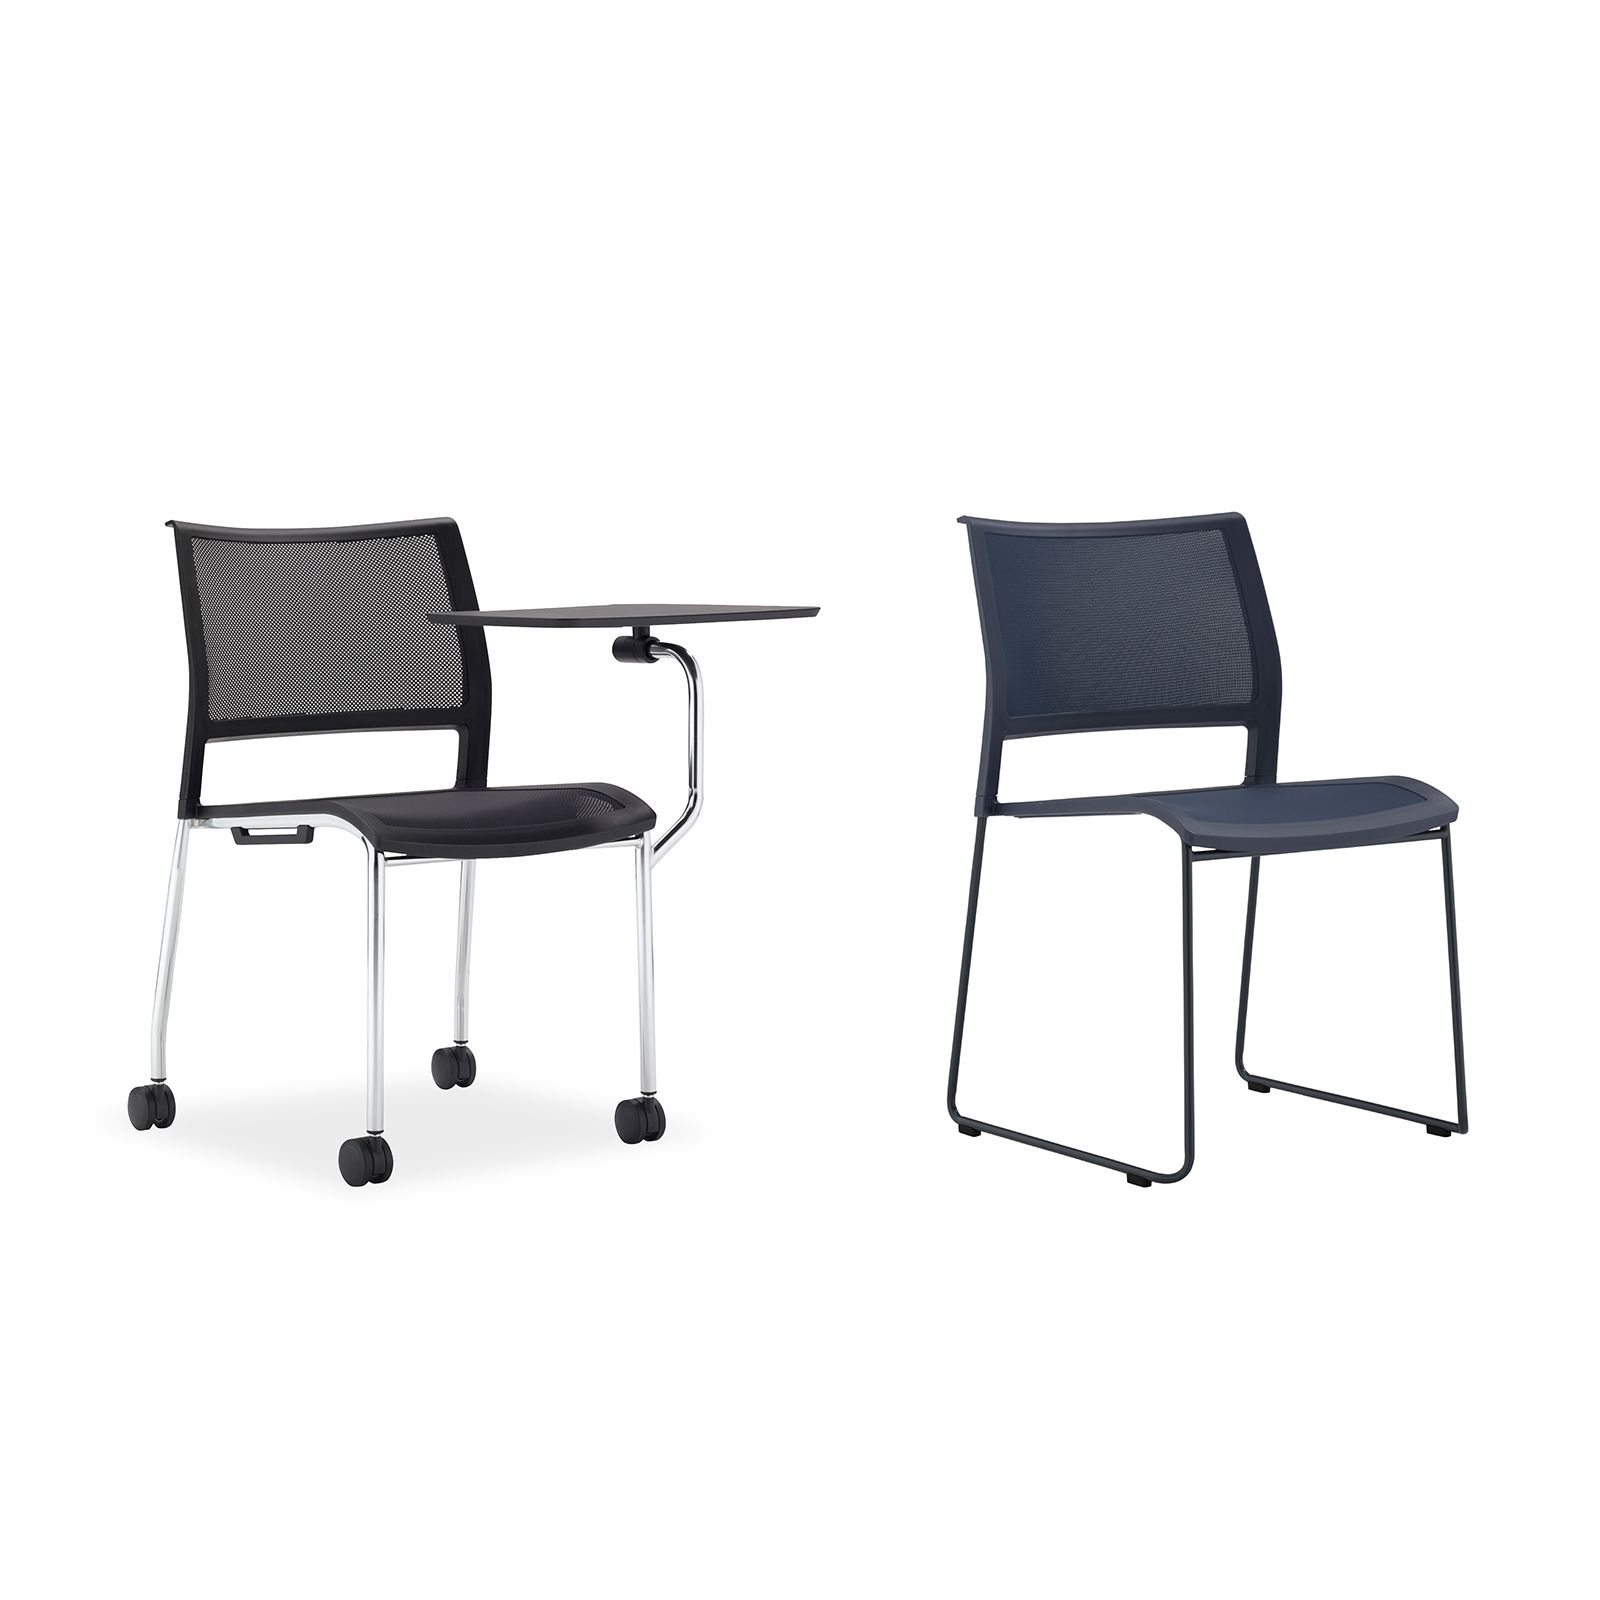 TIPO CHAIR